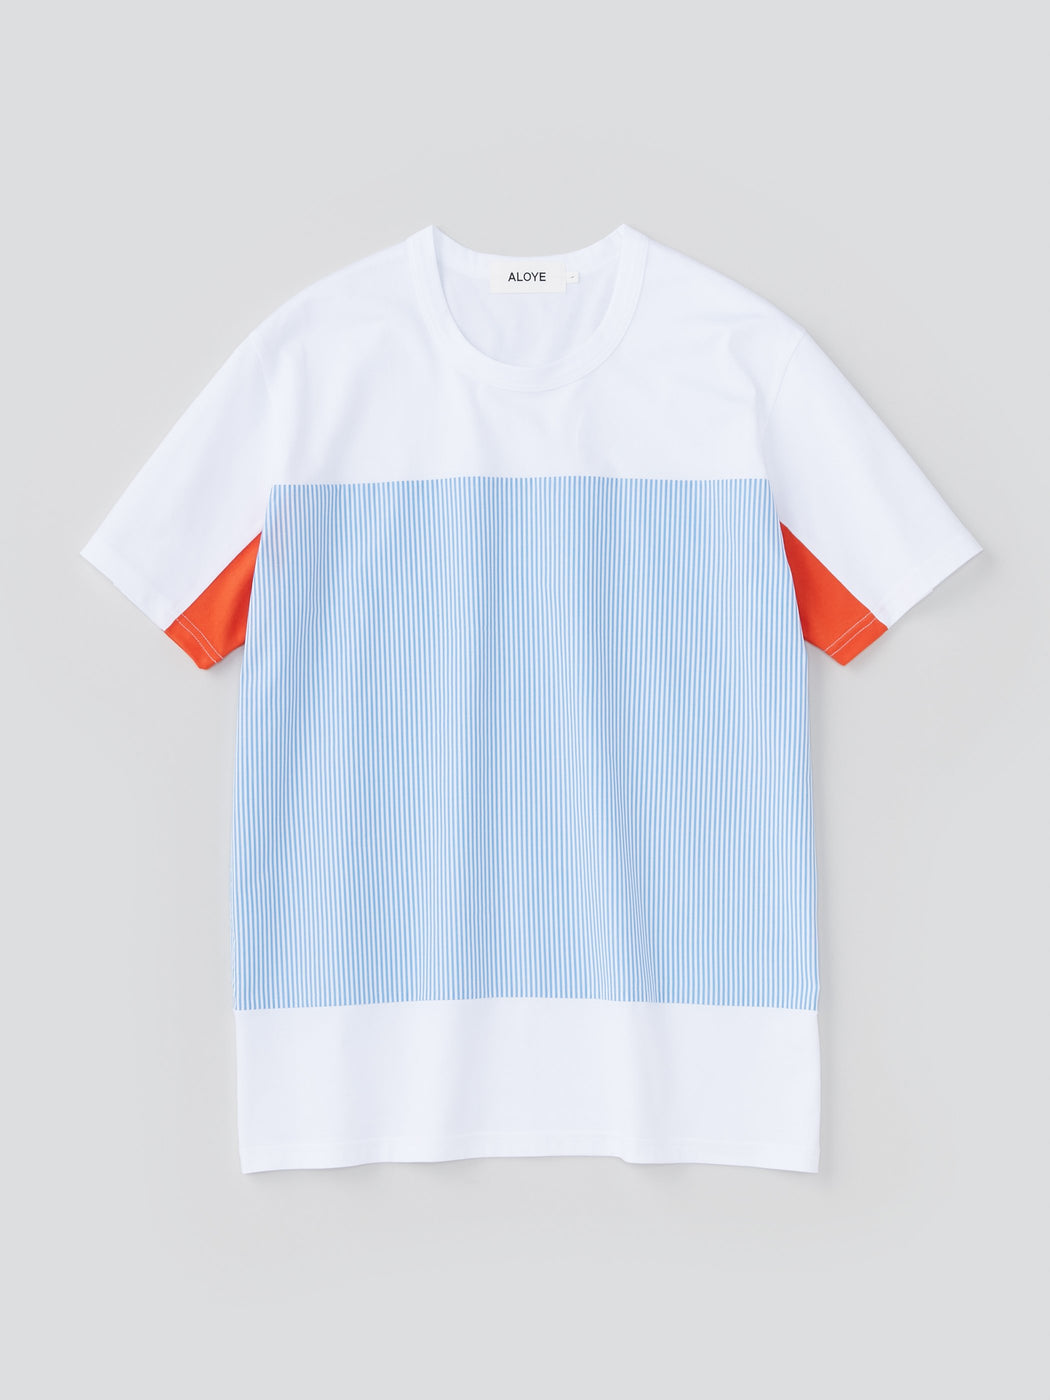 ALOYE Shirt Fabrics Men's Short Sleeve T-shirt Light Blue Stripe-Orange